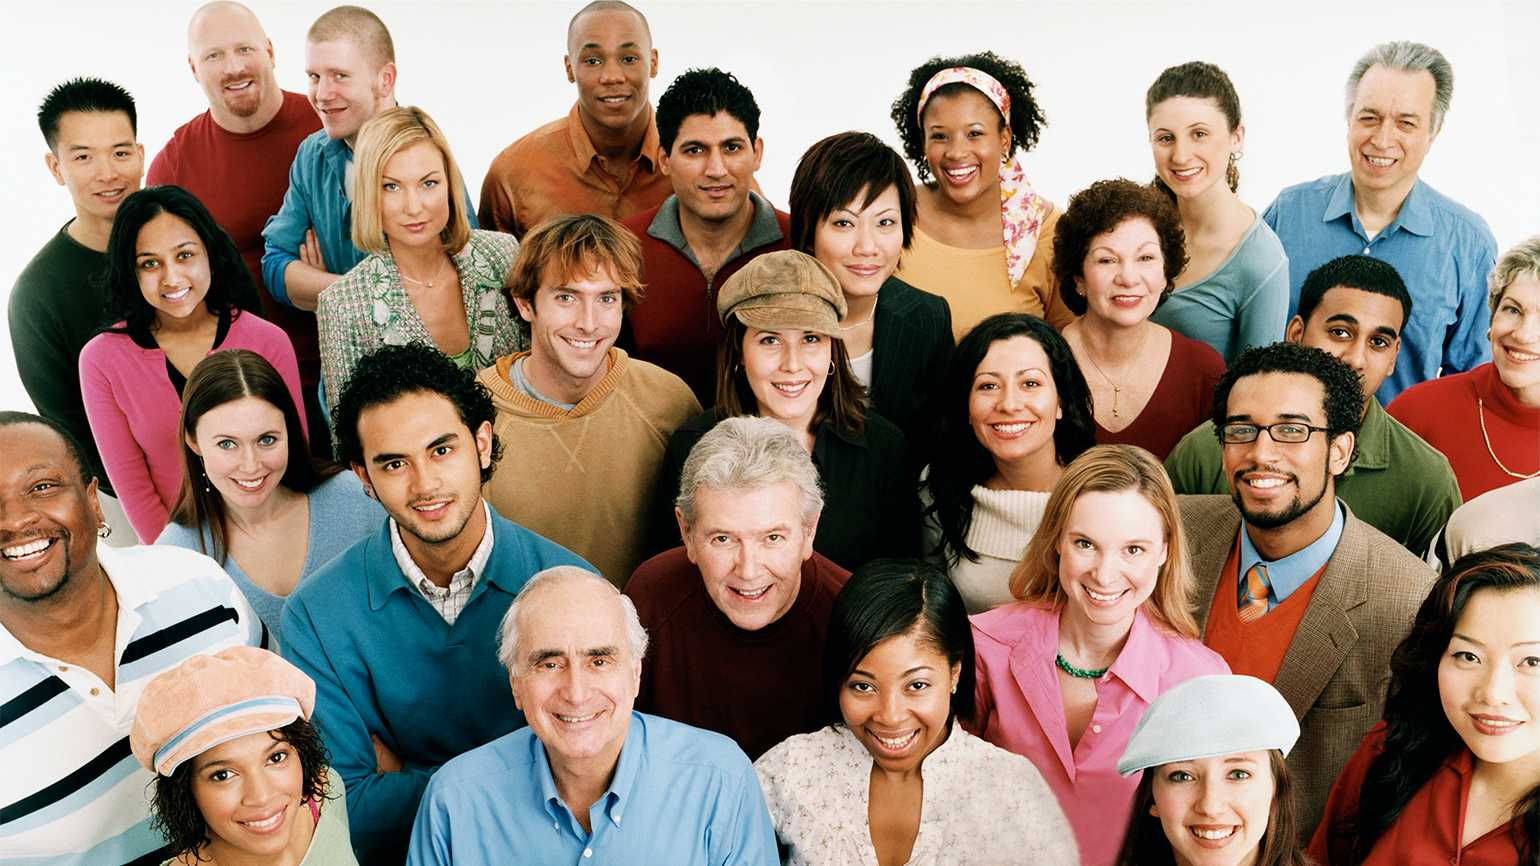 A multicultural group of Guideposts readers